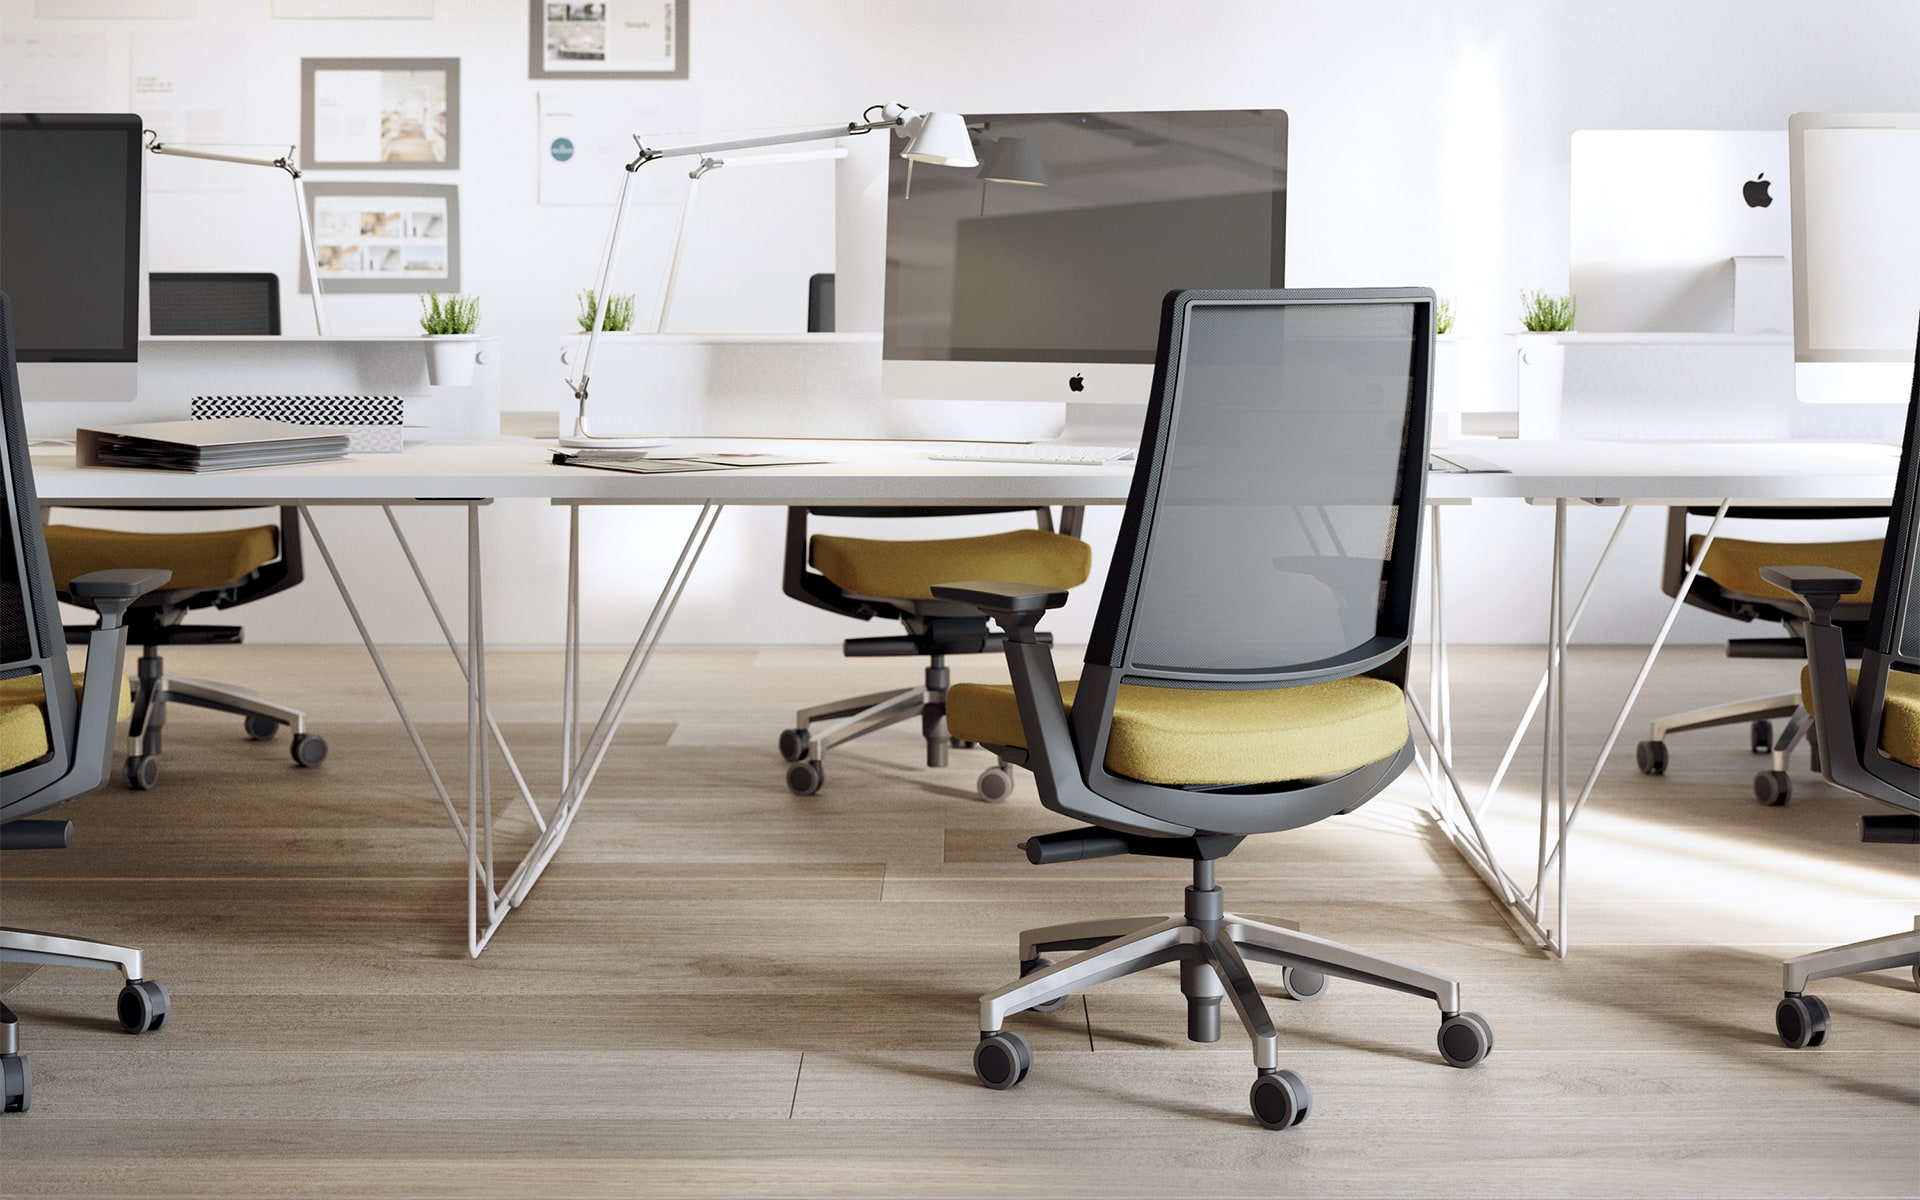 Forma5 Kineo office chairs by ITO Design with ochre upholstery in modern group workspace